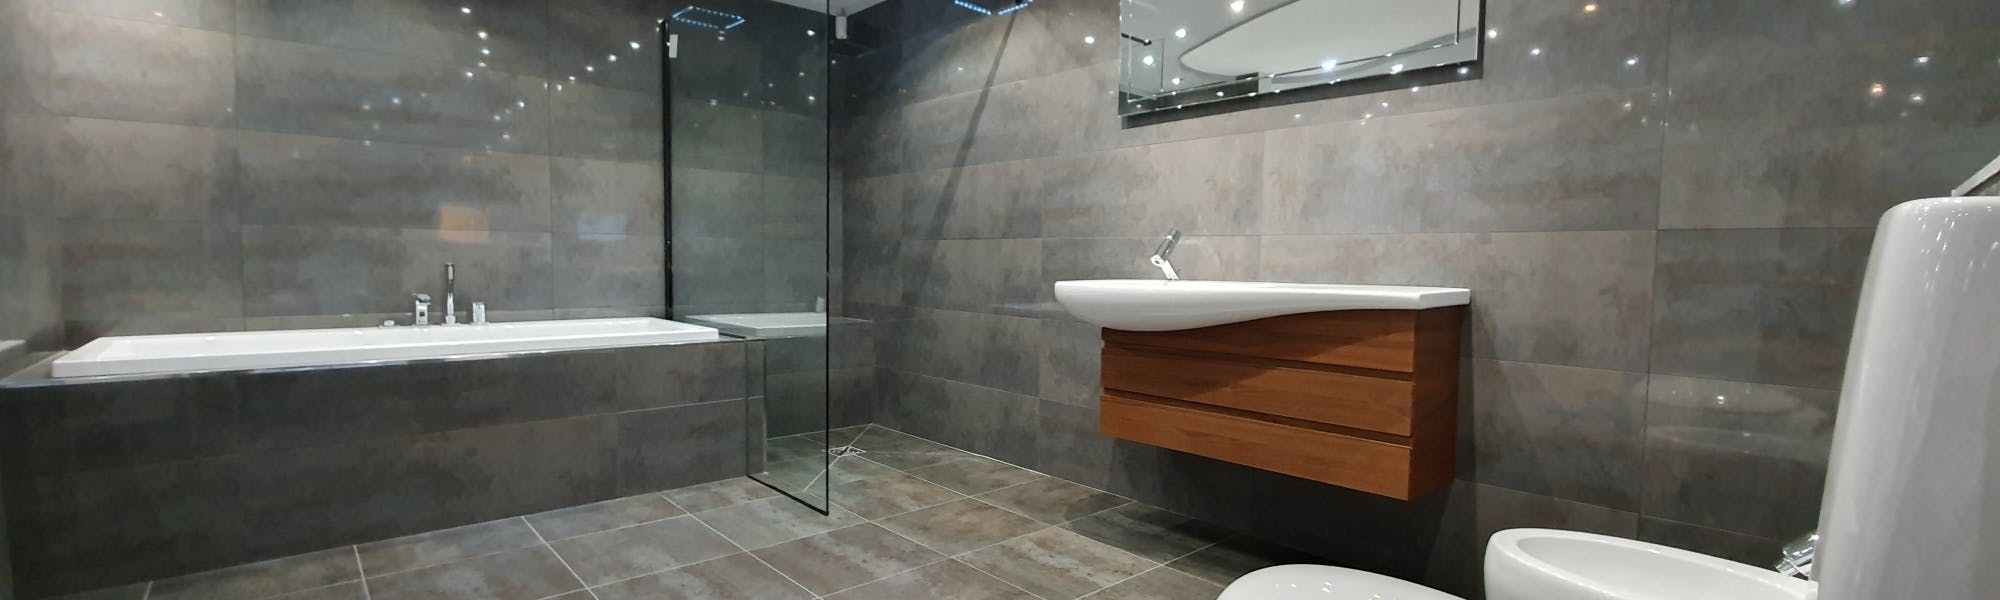 York Bathrooms | York Bathroom Showrooms | More Bathrooms